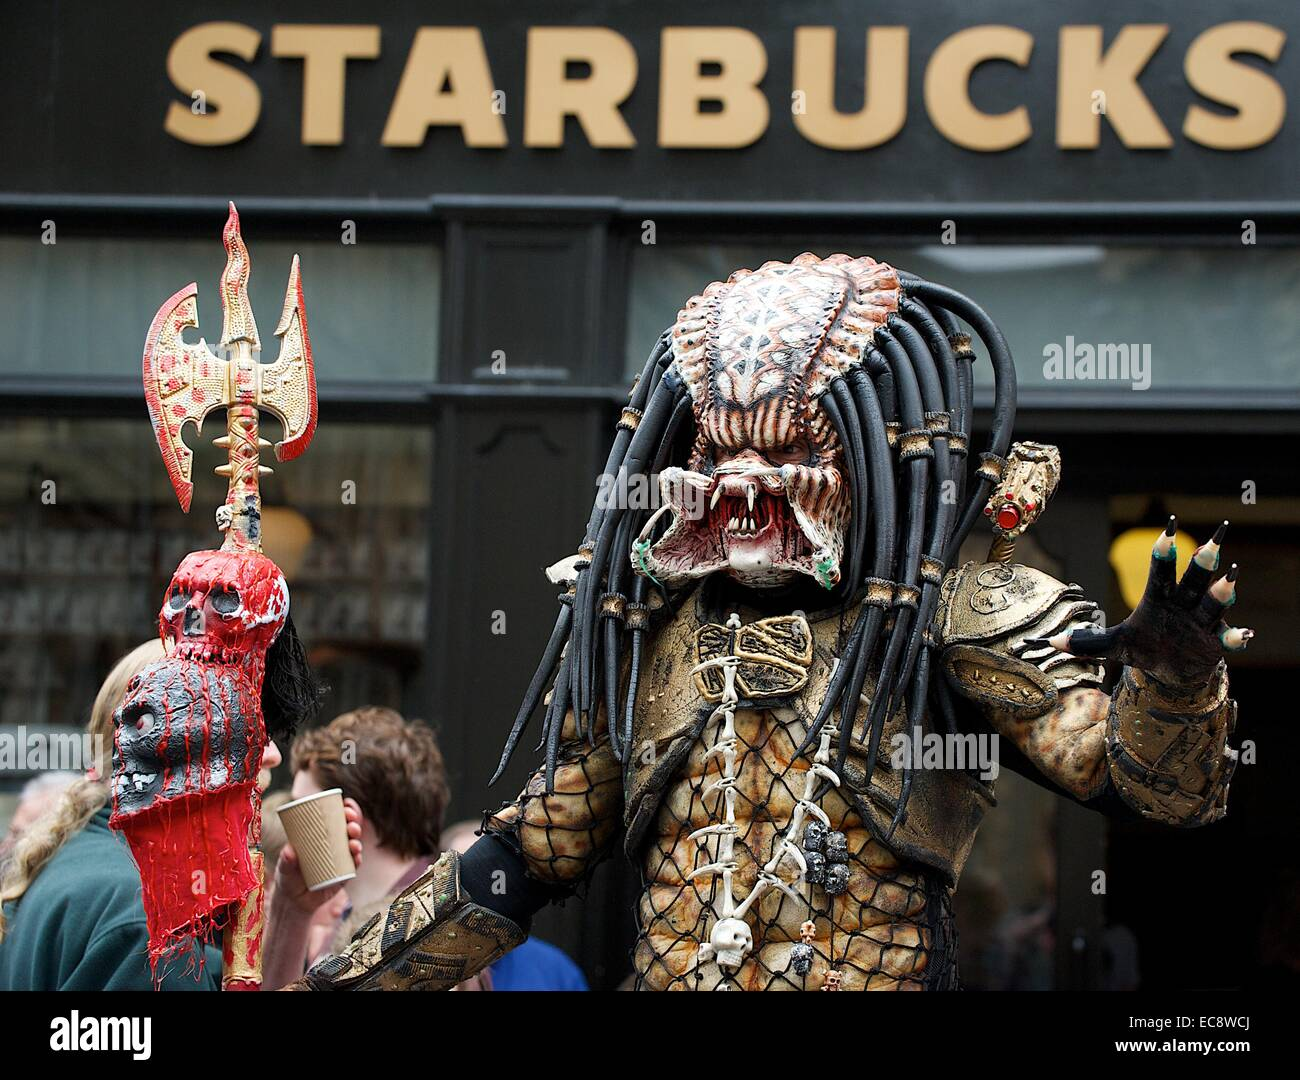 Performer in Alien Predator costume outside Starbucks in Edinburgh & Performer in Alien Predator costume outside Starbucks in Edinburgh ...